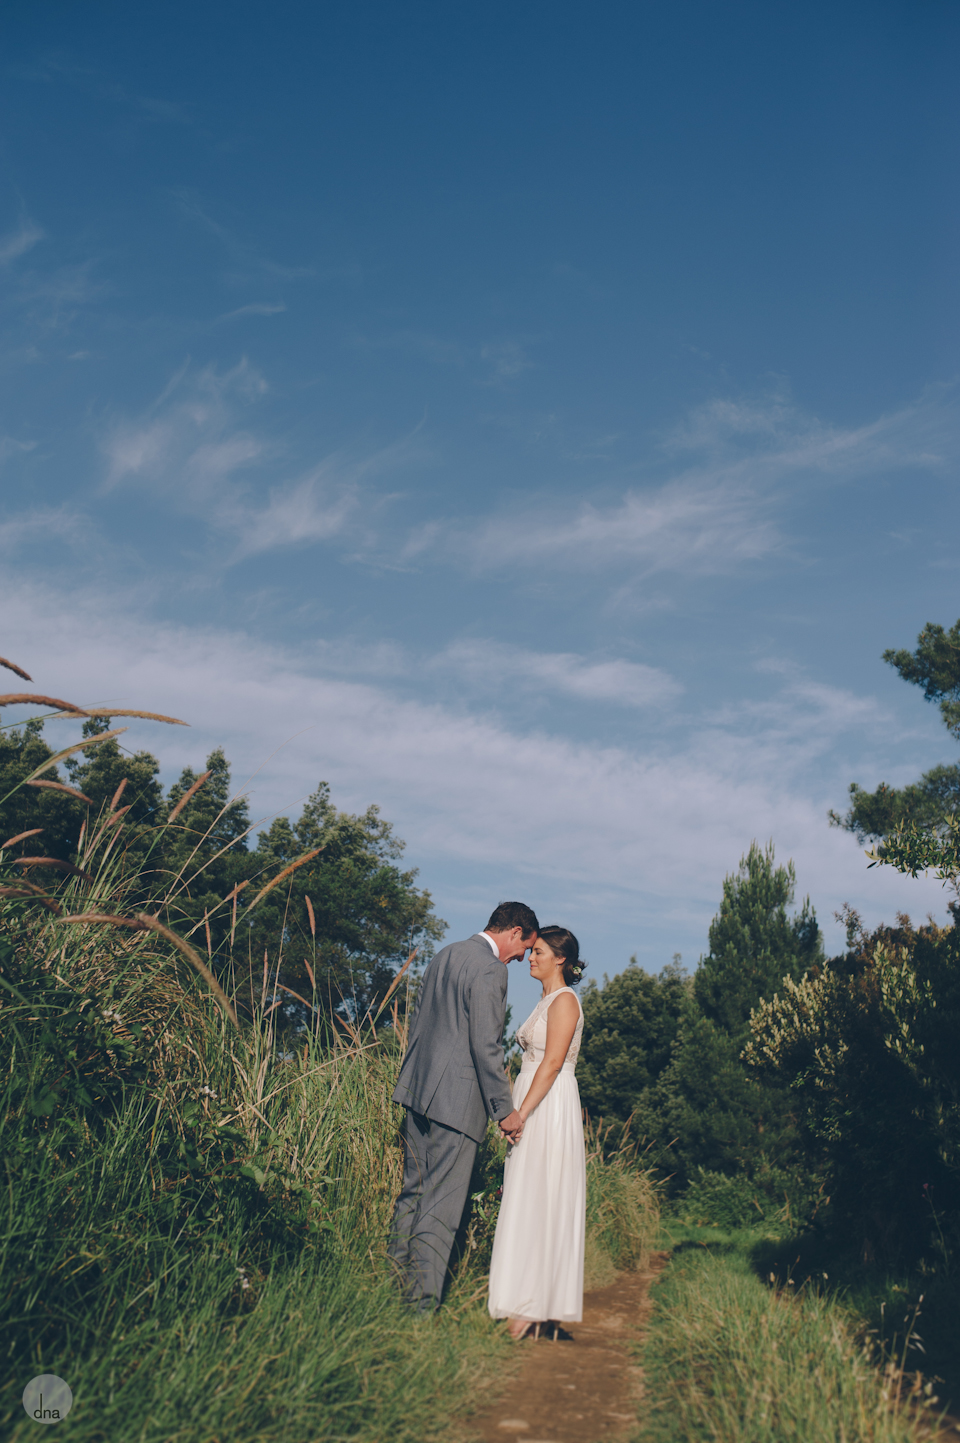 Caroline and Nicholas wedding Zorgvliet Stellenbosch South Africa shot by dna photographers 605.jpg